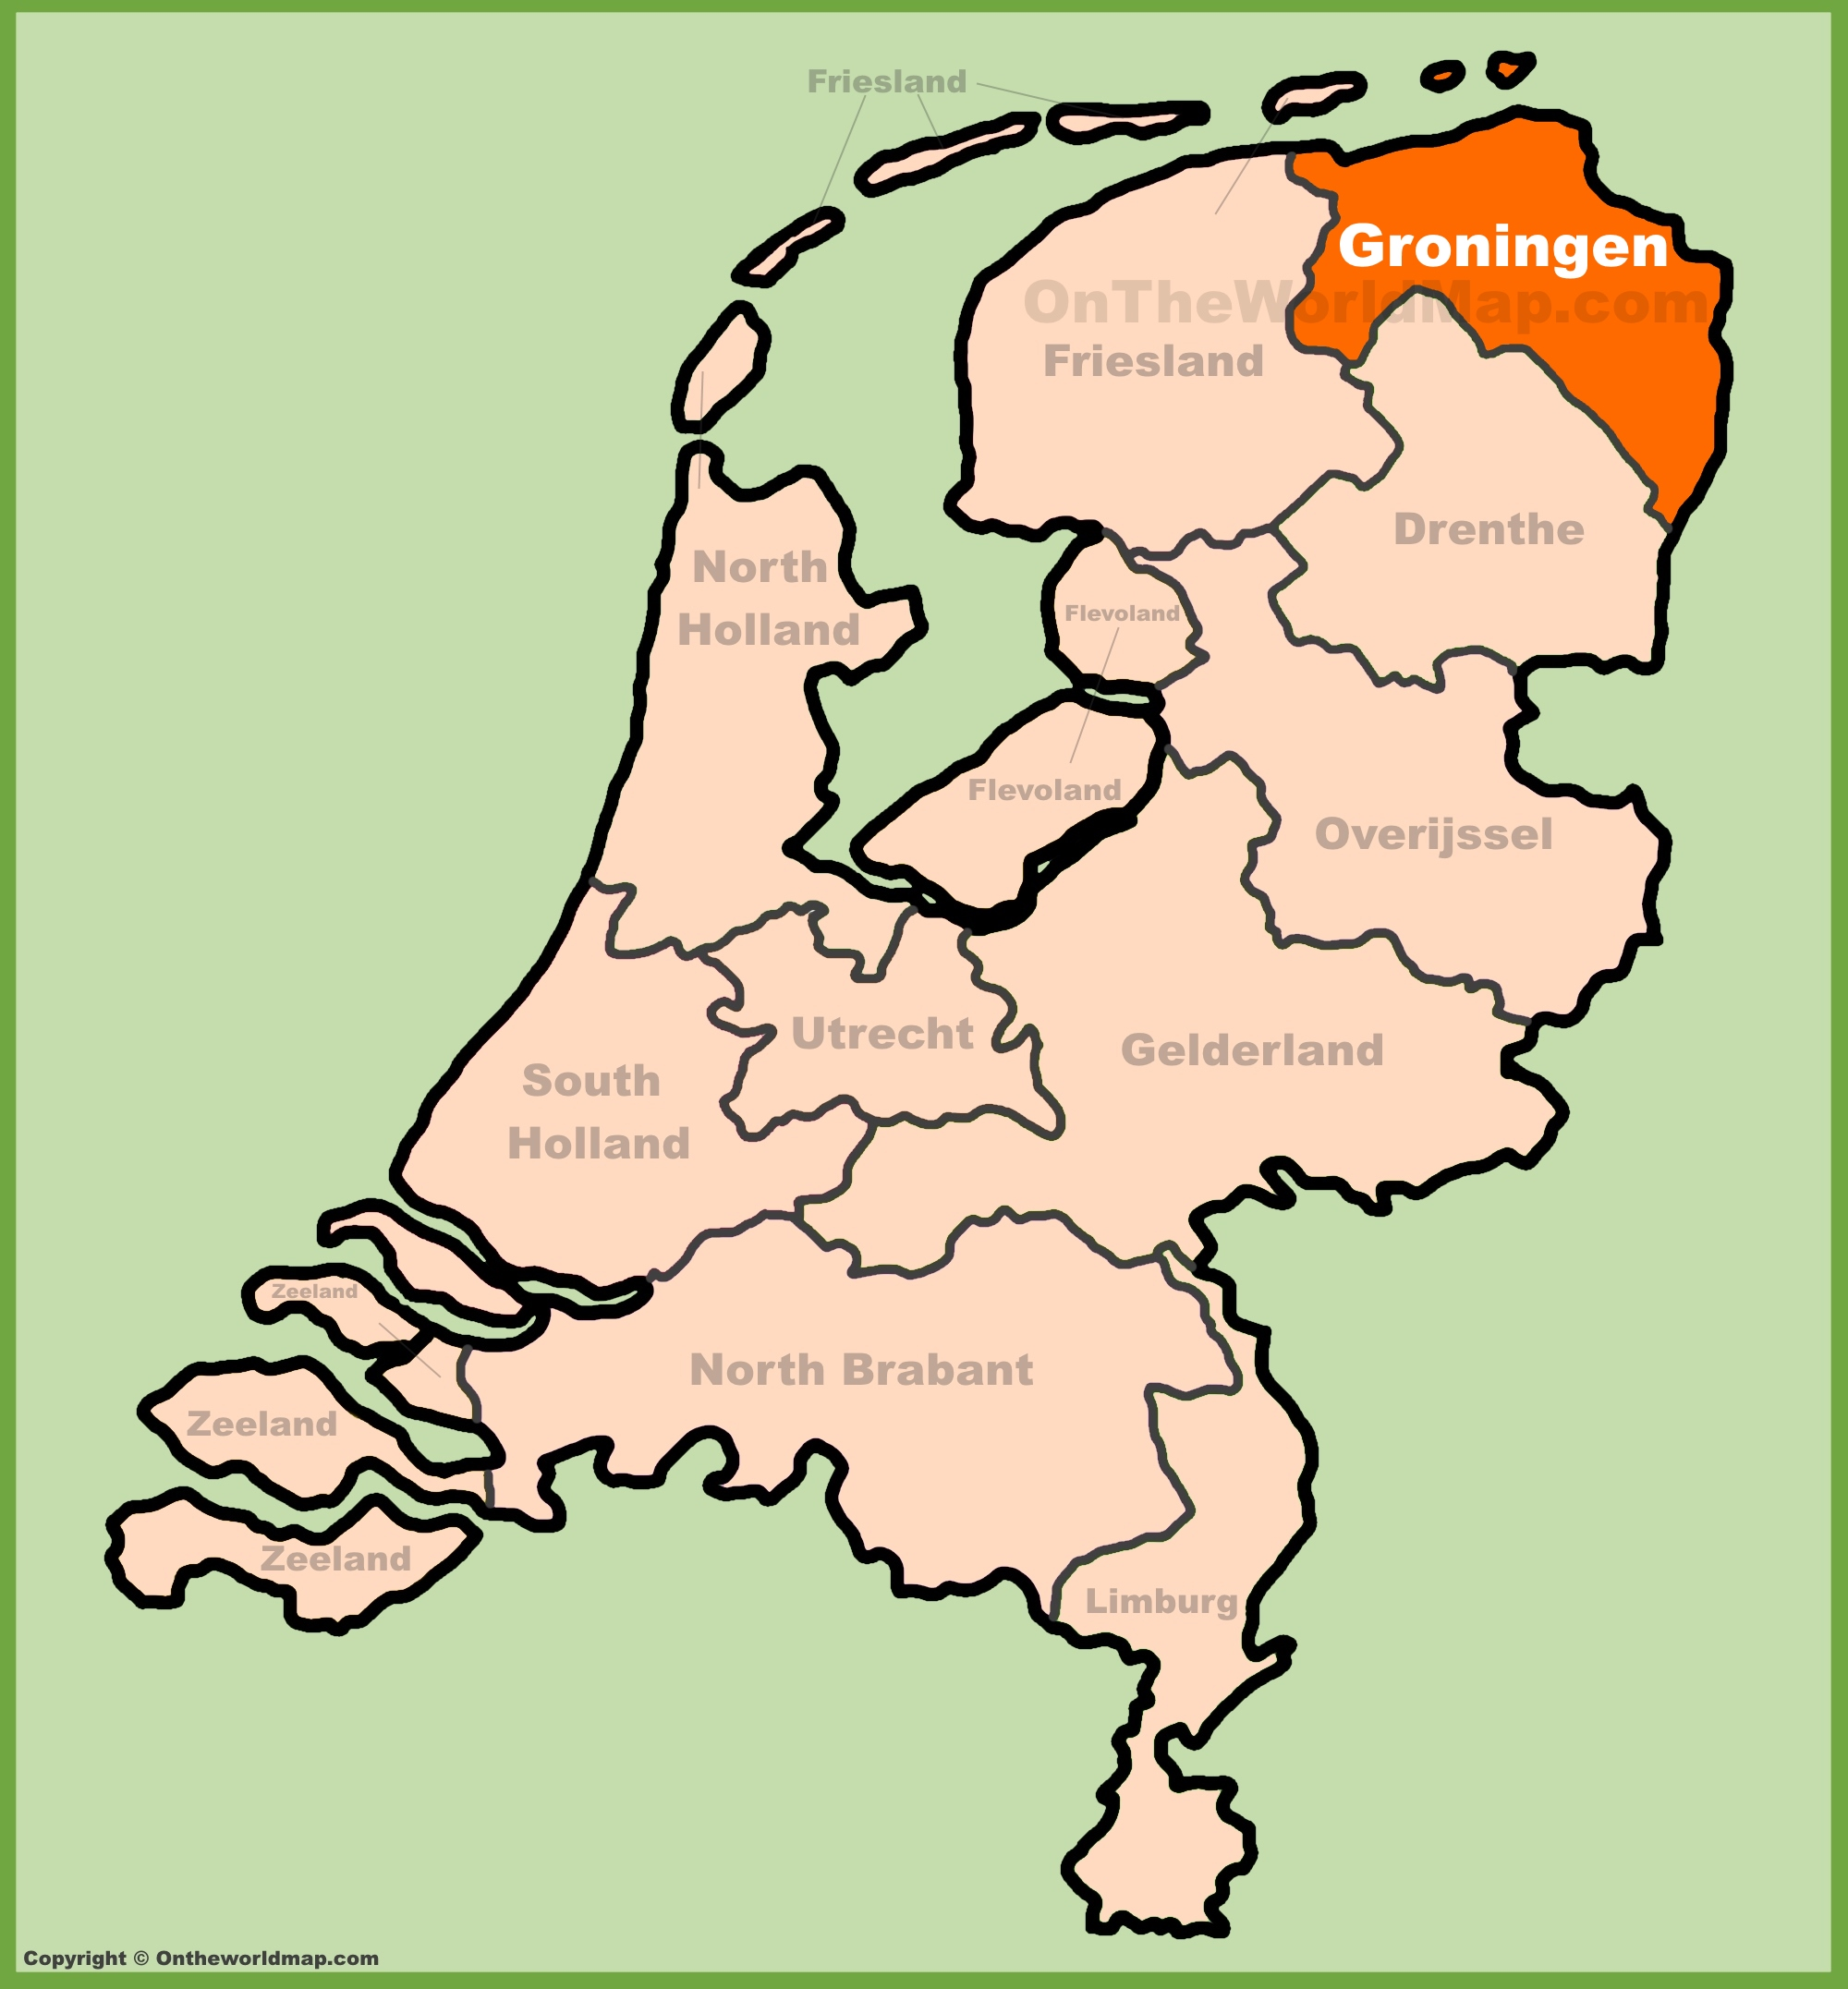 Groningen (province) location on the Netherlands map